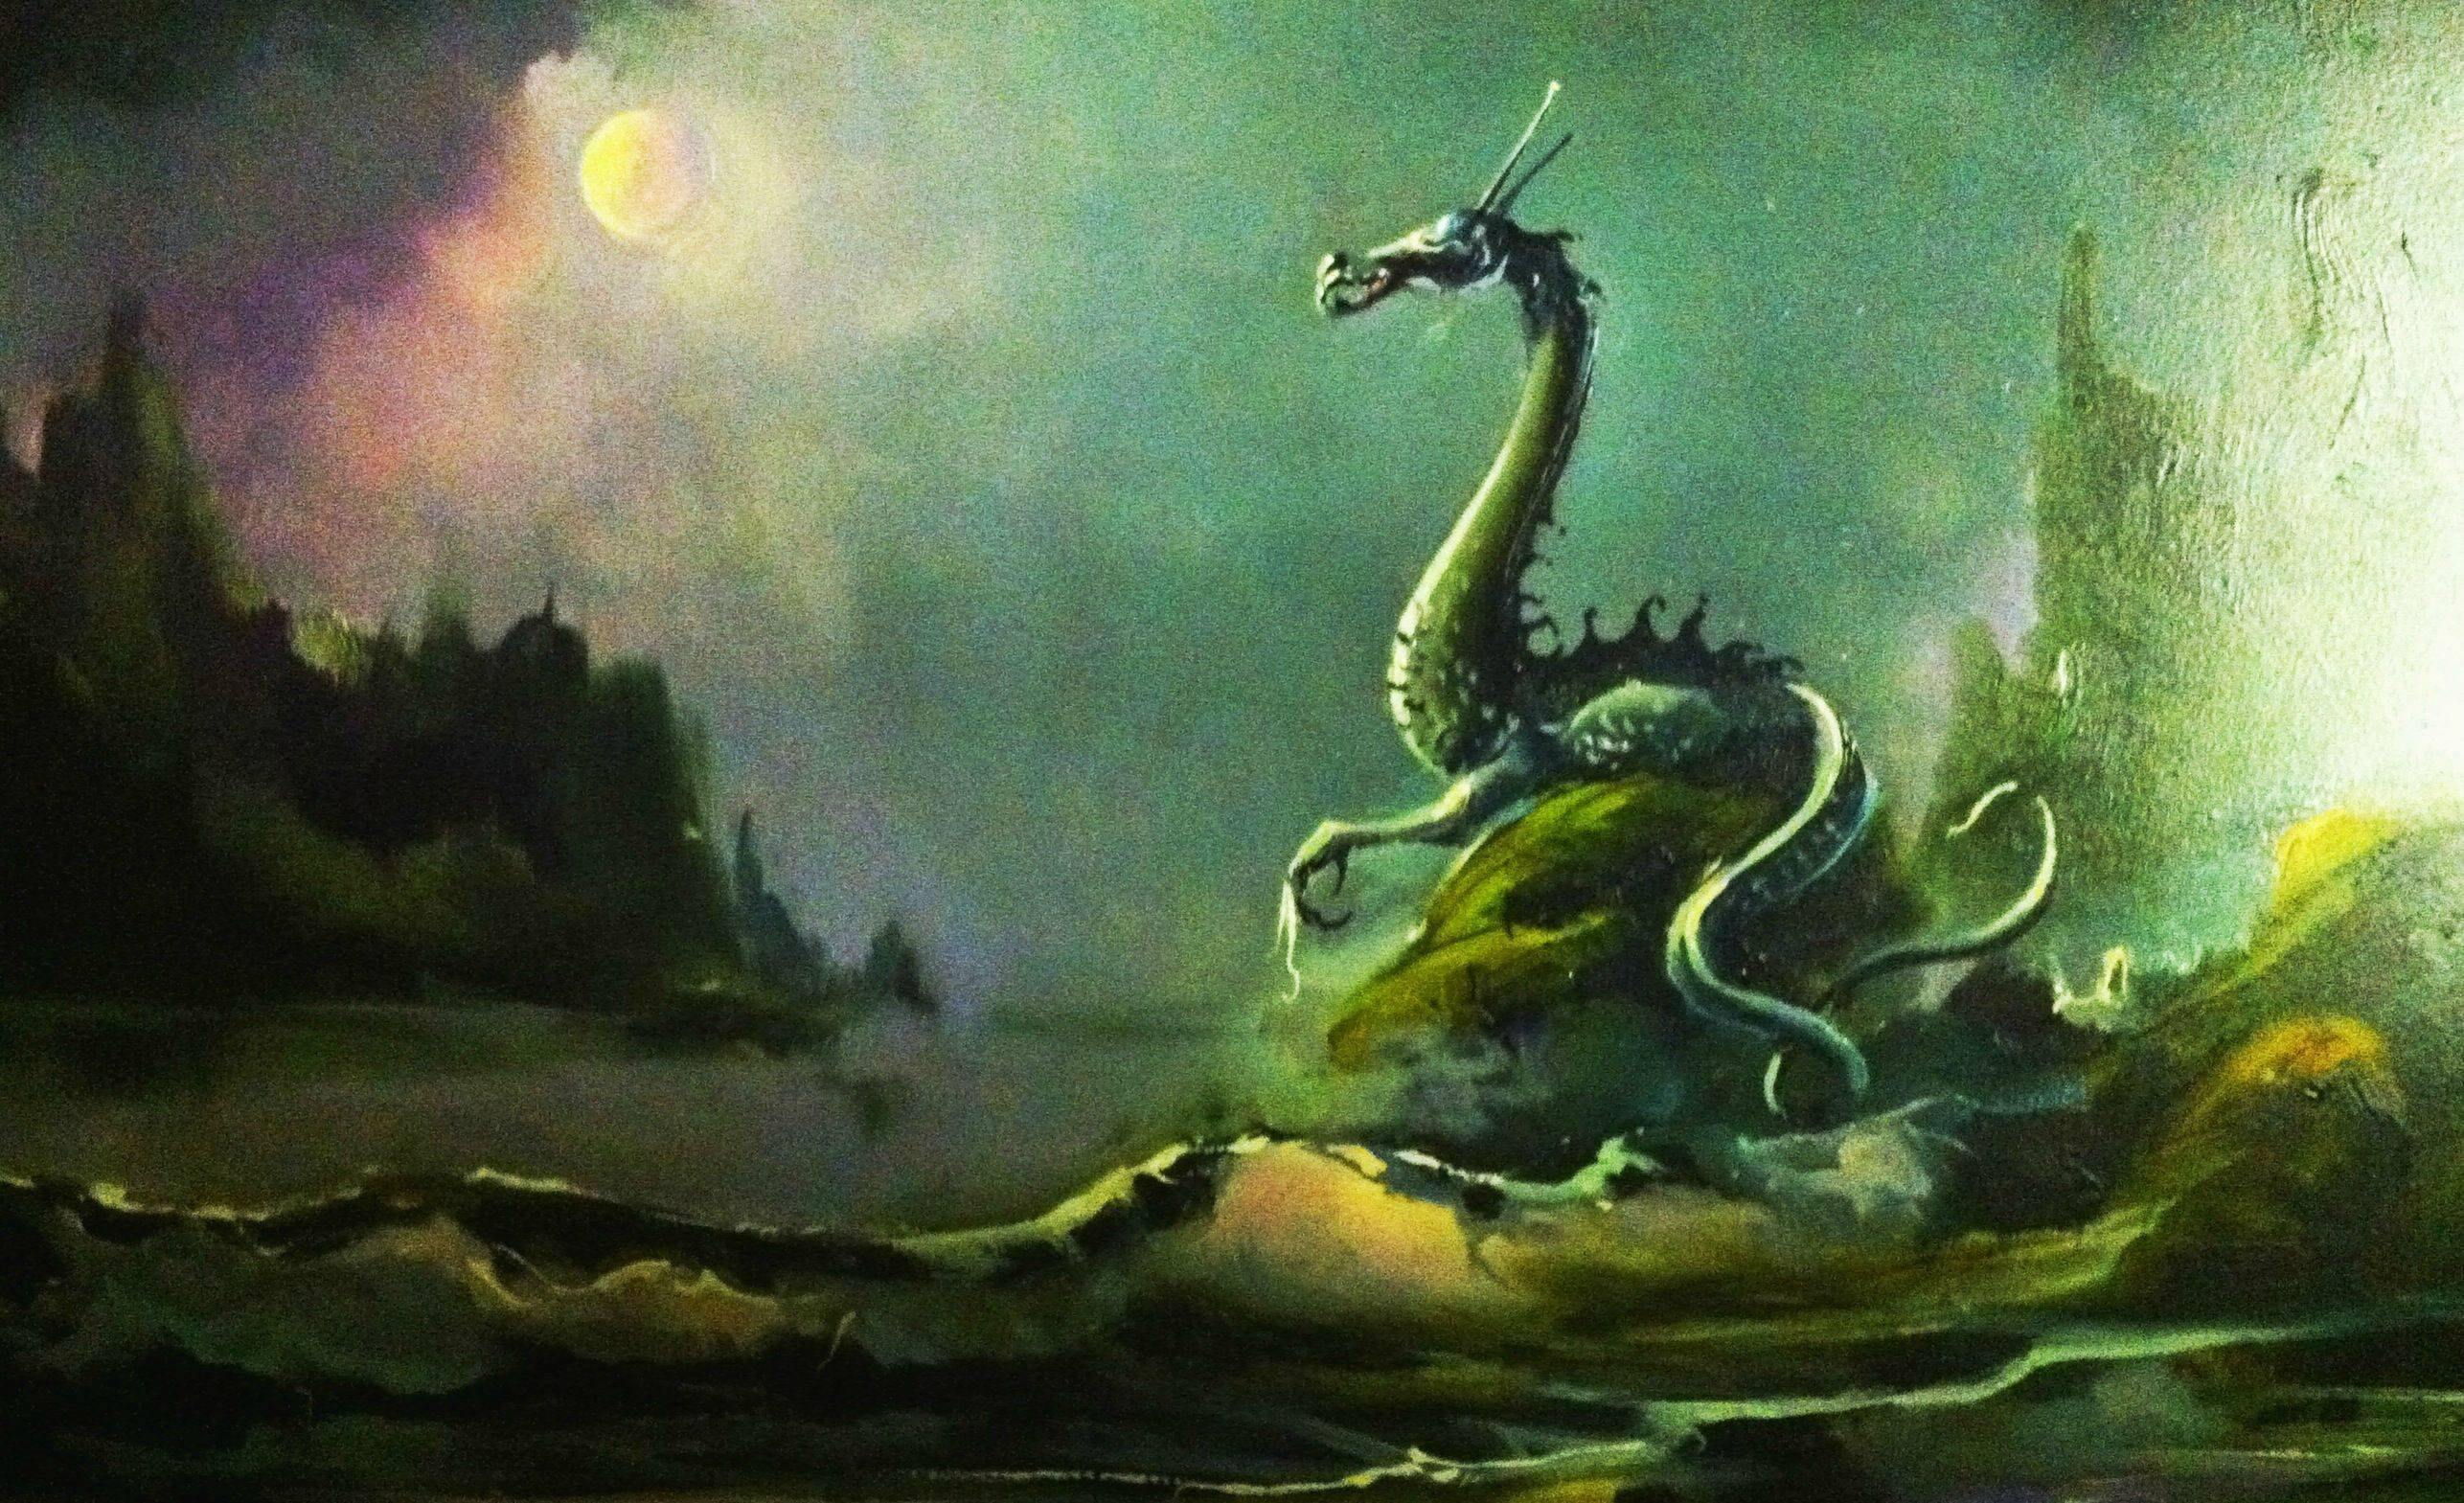 Drachen full hd wallpaper and hintergrund 2572x1569 id for Where can i find wallpaper